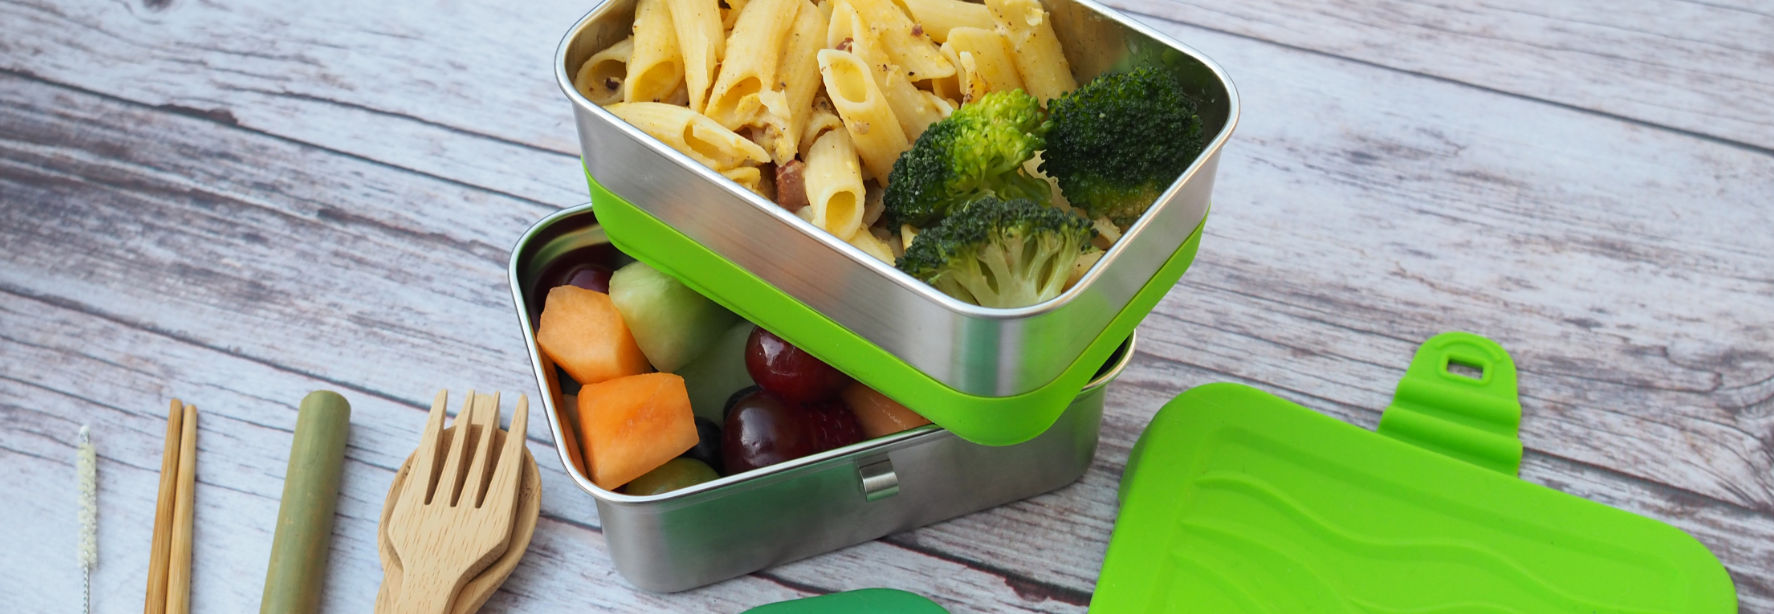 ECOlunchbox Blue Water Bento containers holding pasta, broccoli, and fruits on a table with reusable forks and straws.